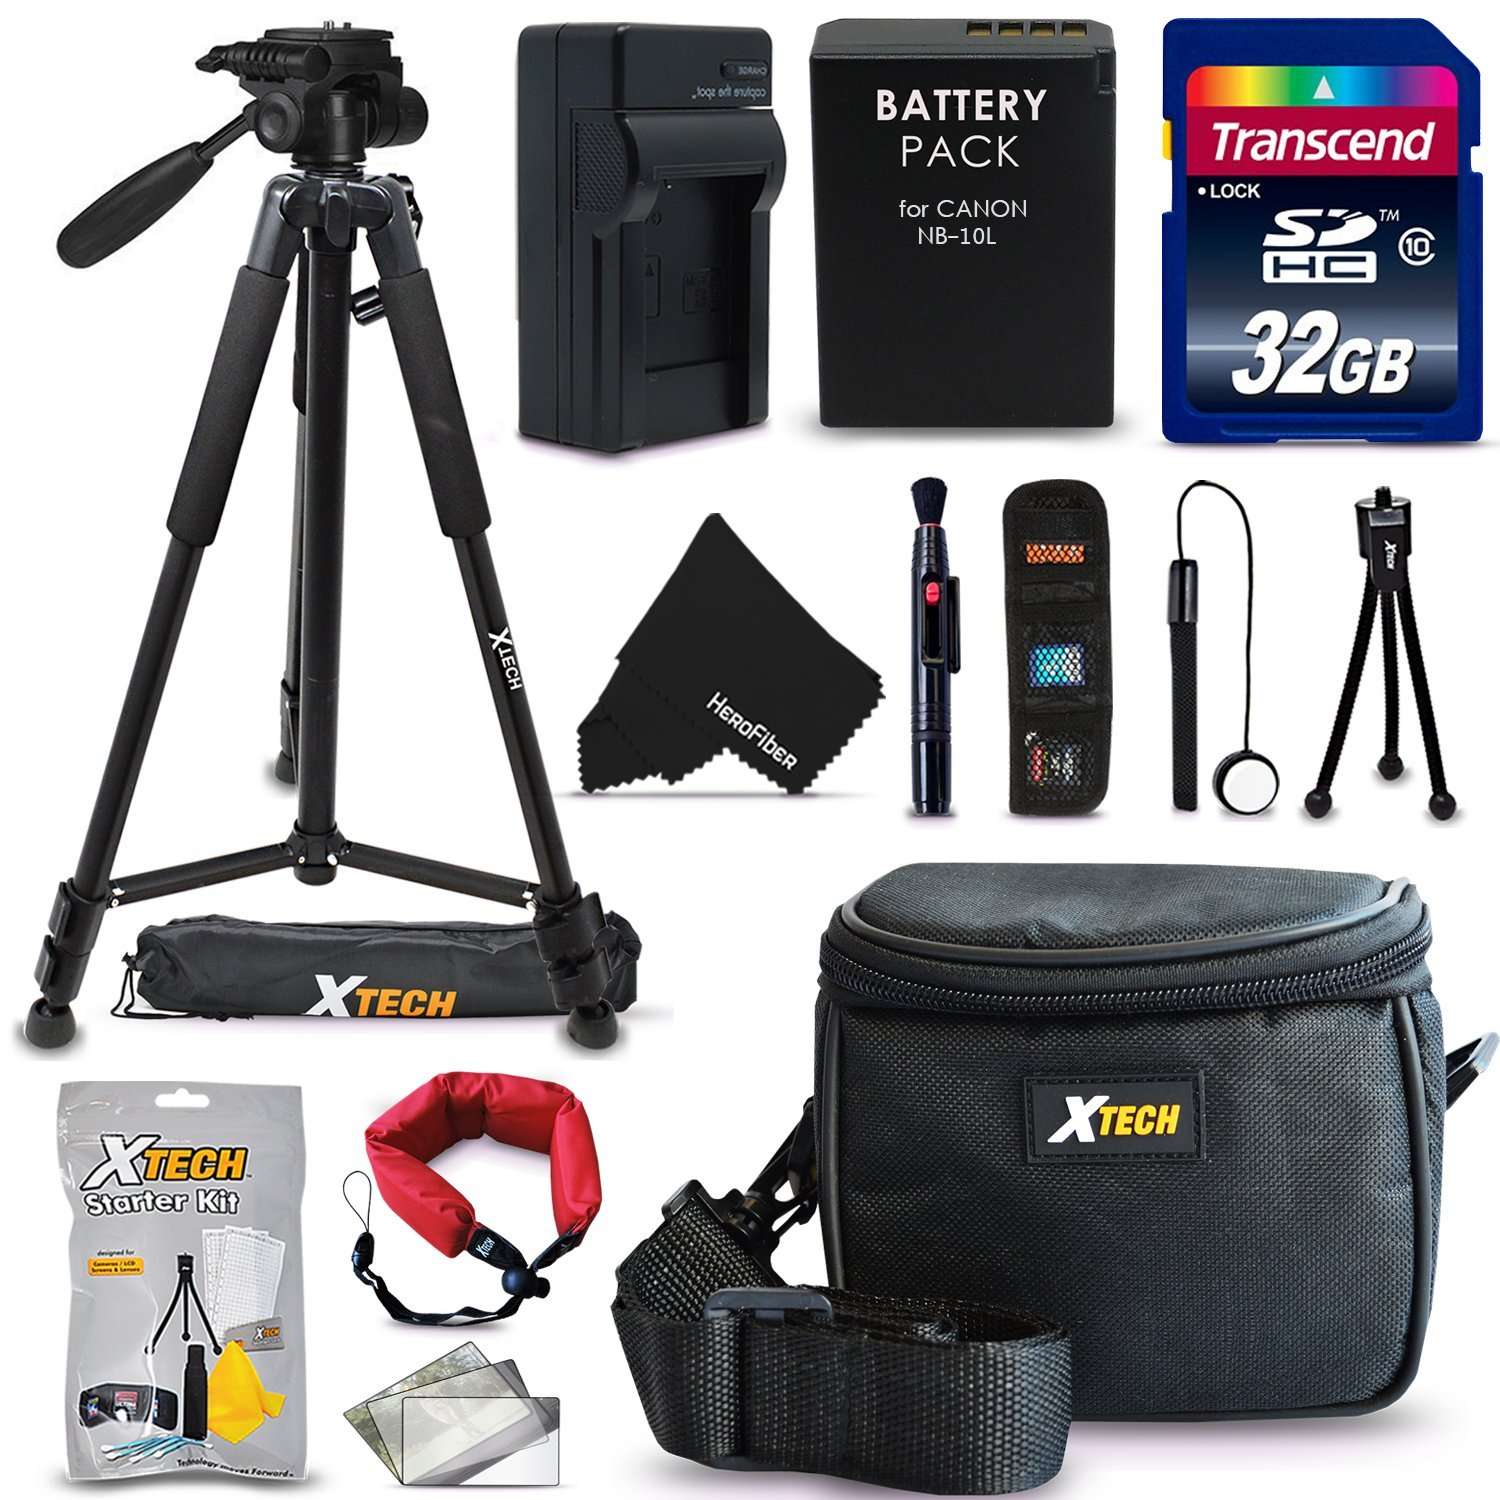 """Ultimate 20 Piece Accessory Kit for Canon Powershot SX60 HS, SX50 HS, SX40 HS, G1X, G16, G15 Digital Cameras Includes: 32GB High Speed Memory Card + 1 High Capacity NB-10L / NB10L Lithium-ion Battery with Quick AC/DC Charger + 60"""" Inch Full Size Tripod"""